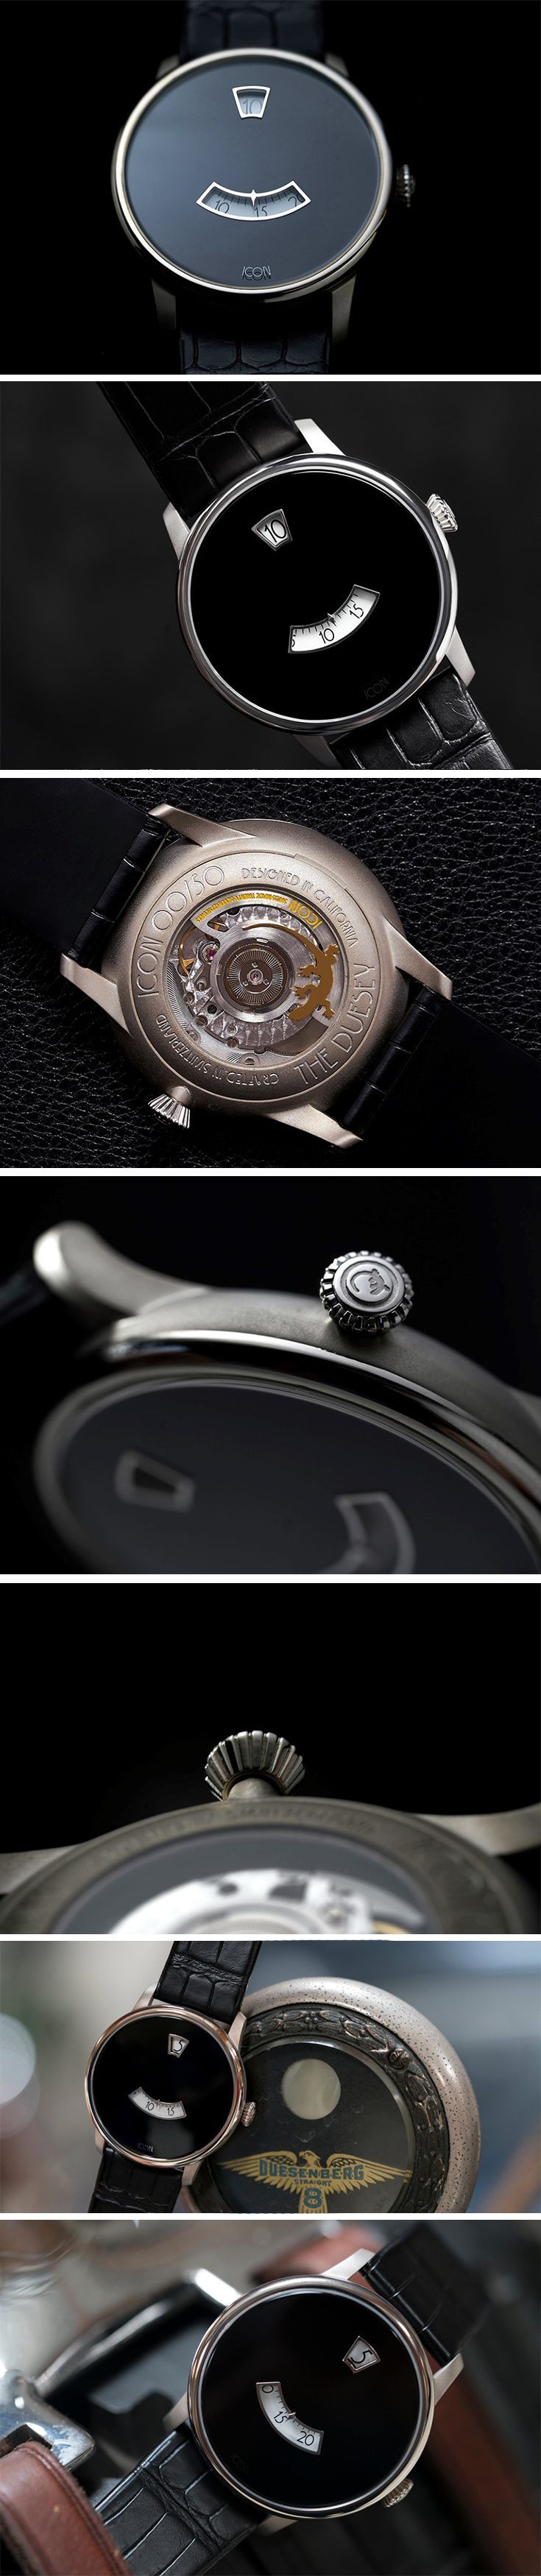 The Icon Duesey Watch looks beautiful, but it also looks familiar to some. If you're wondering why, it's because the watch takes direct inspiration from the original Duesenberg tachometer. The watch comes built in a grade 2 titanium body with a sandblasted finish and a grade 5 titanium bezel that holds together a double domed sapphire crystal. BUY NOW!